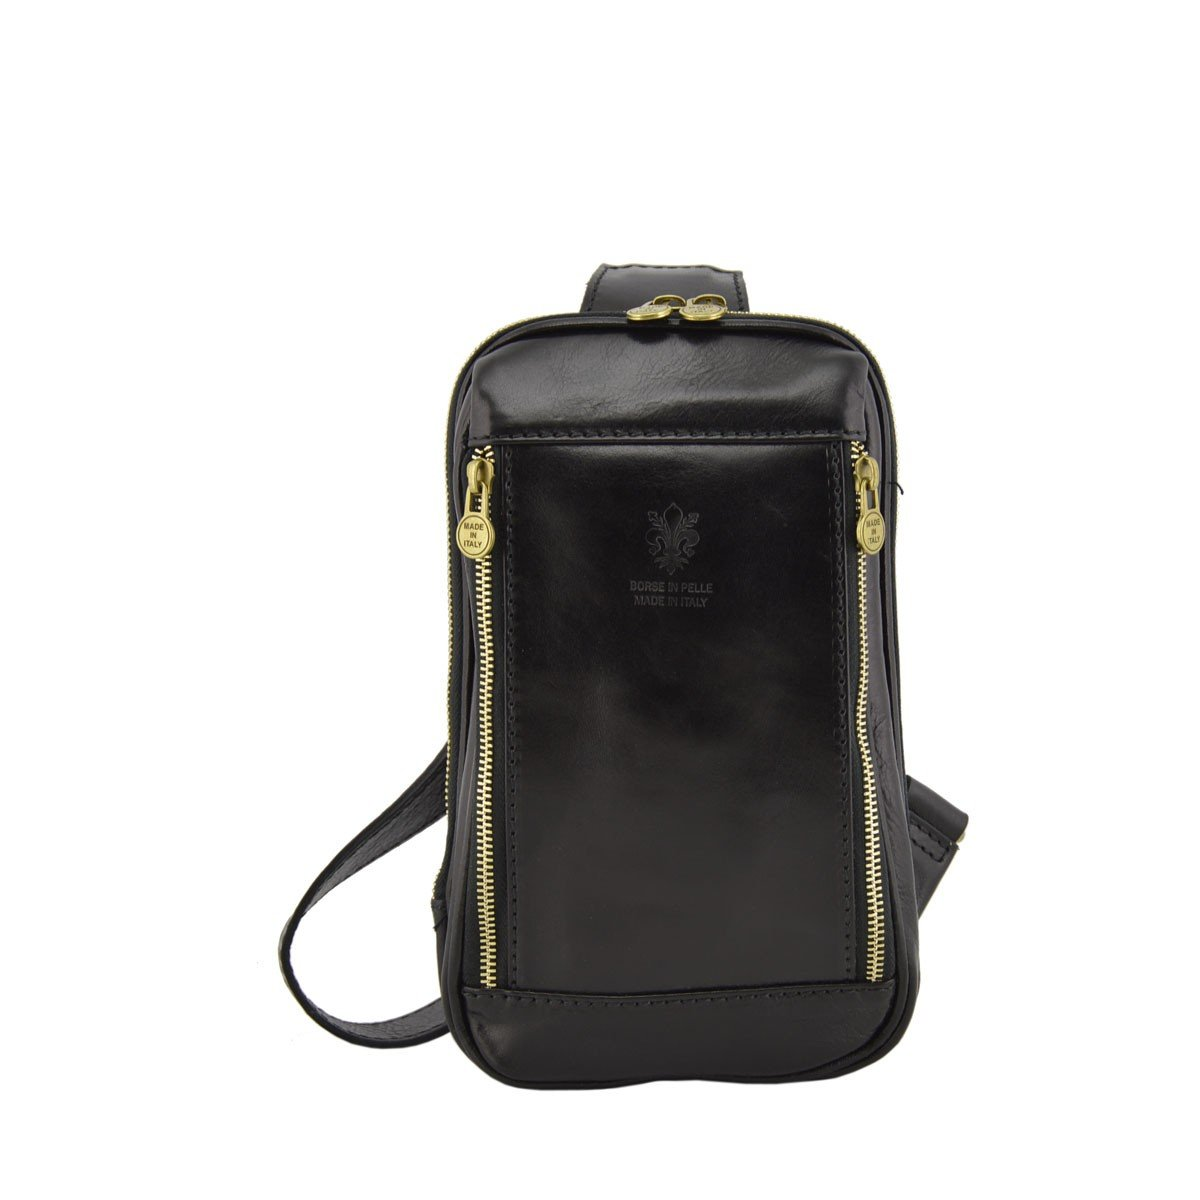 Dream Leather Bags Made in Italy Genuine Leather メンズ 516-1 US サイズ: 1 M US カラー: ブラック   B075KD7F9S